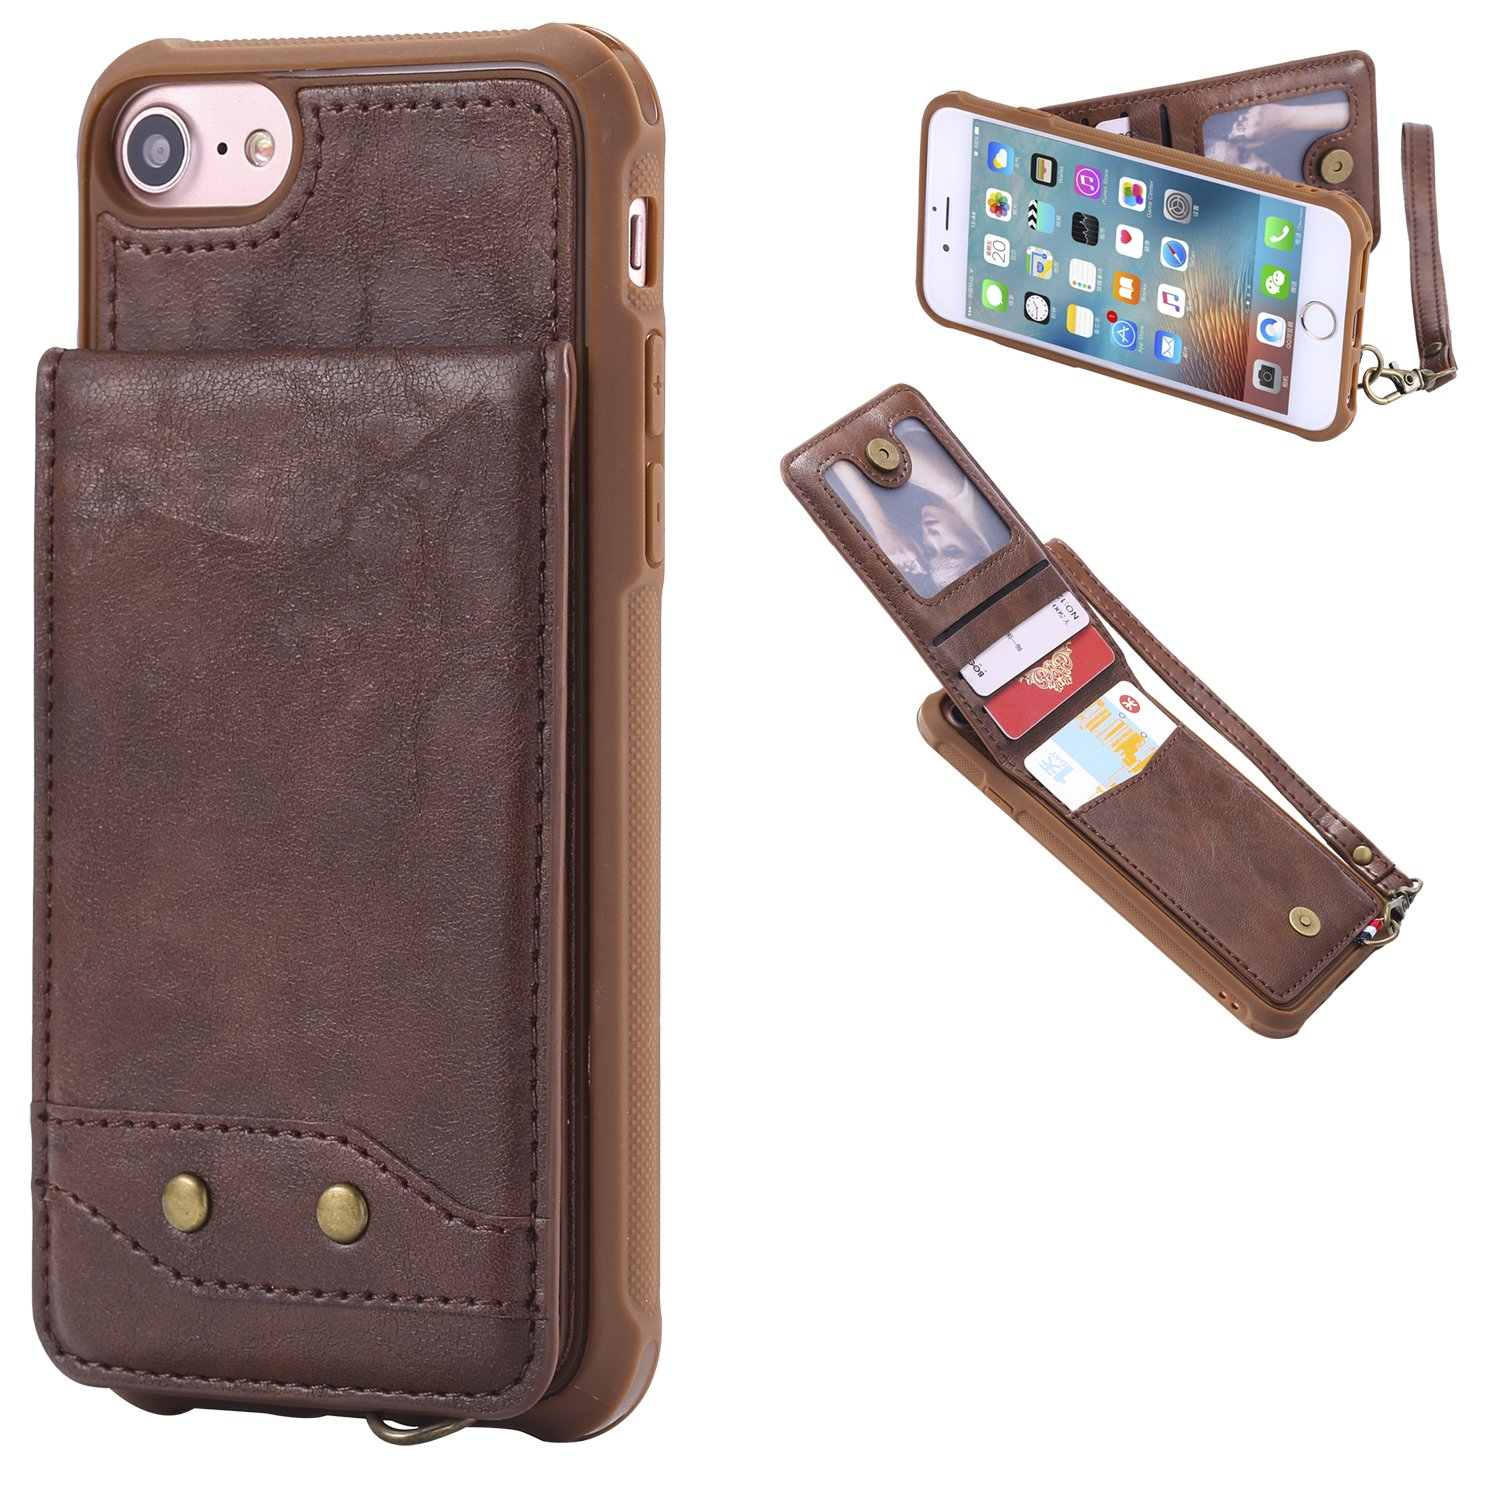 DAMONDY iPhone 6s Case, iPhone 6 Case, Luxury Wallet Purse Card Holders Design Cover Soft Shockproof Bumper Flip Leather Kickstand Magnetic Clasp With Wrist Strap Case for Apple iPhone 6s 6-brown